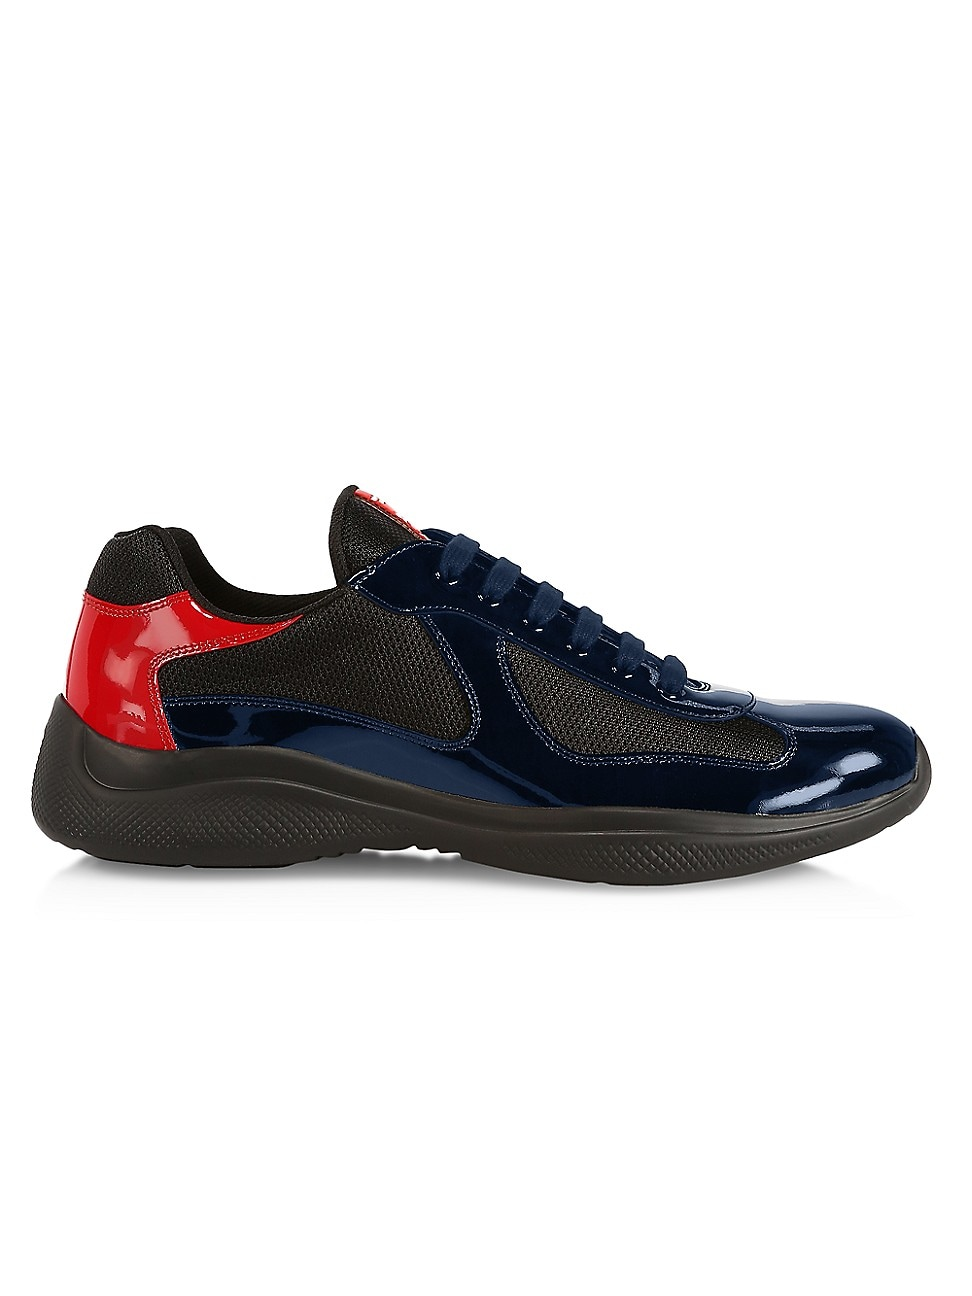 Prada MEN'S AMERICA'S CUP PATENT LEATHER & TECHNICAL FABRIC SNEAKERS